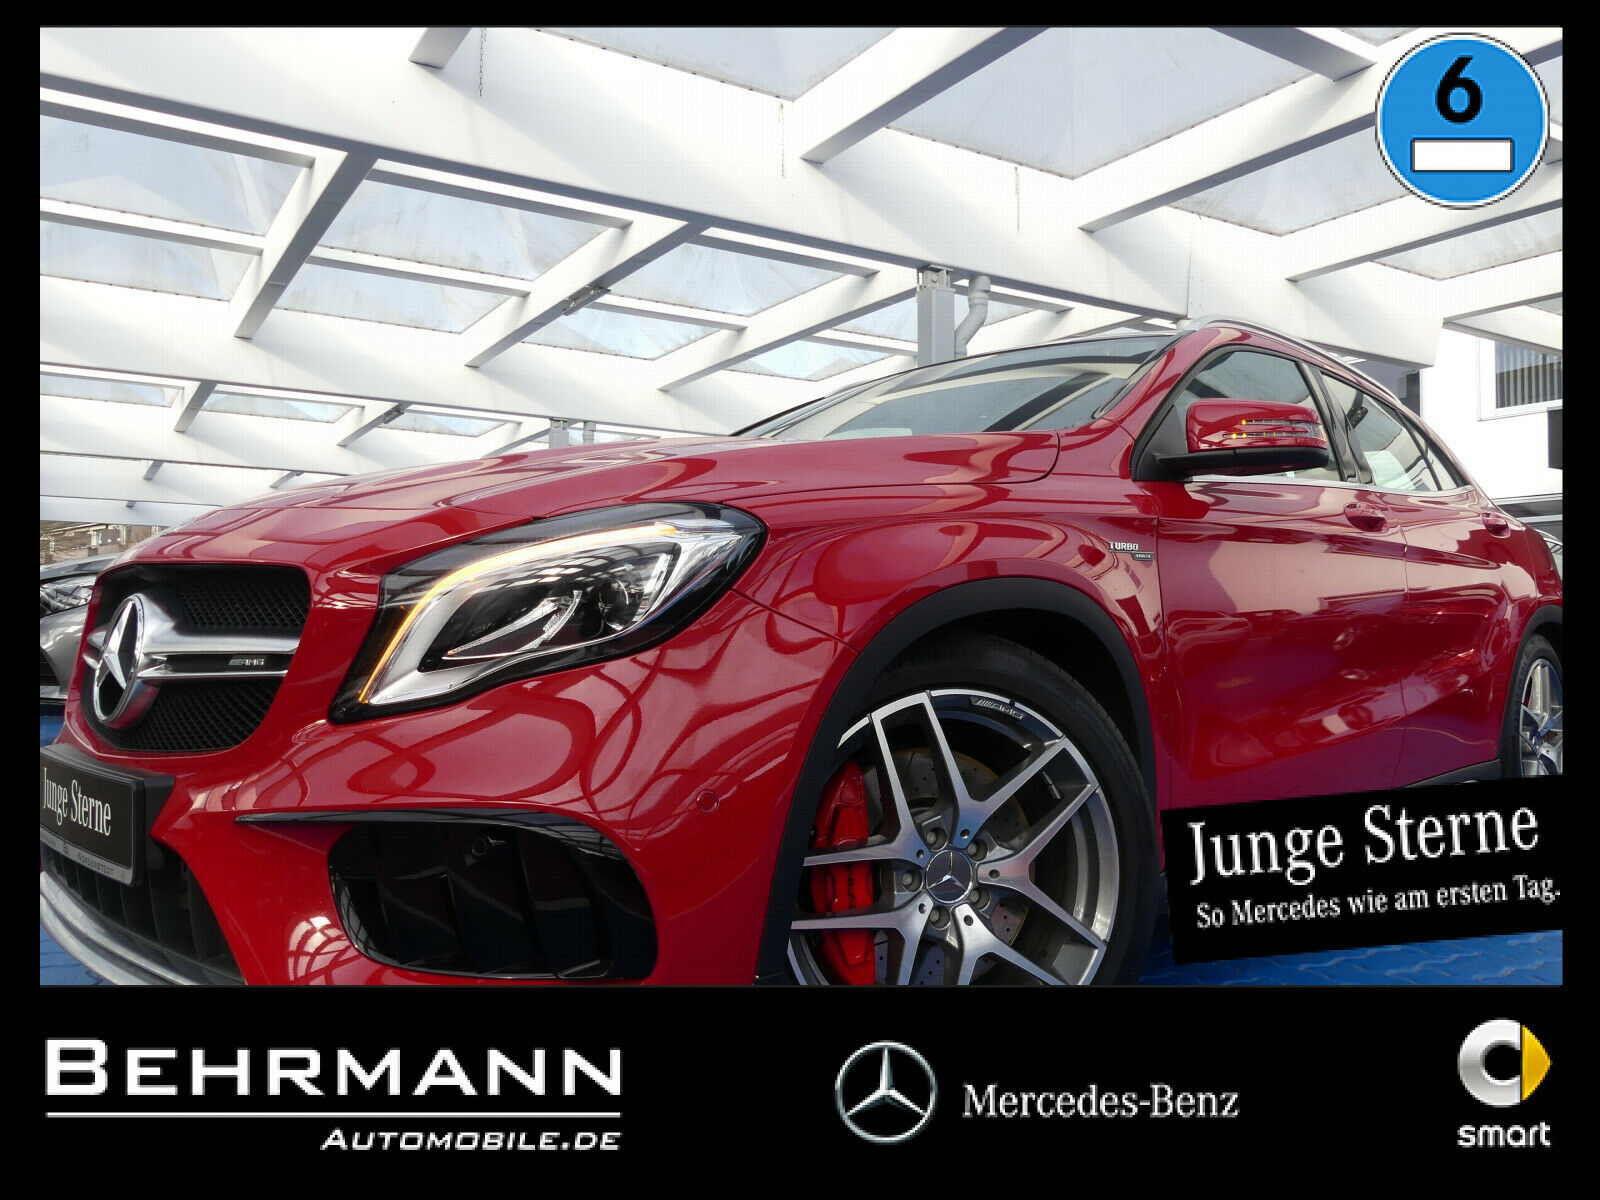 MERCEDES-BENZ GLA 45 4MATIC +Comand+LED++Panoramadach+Keyless+